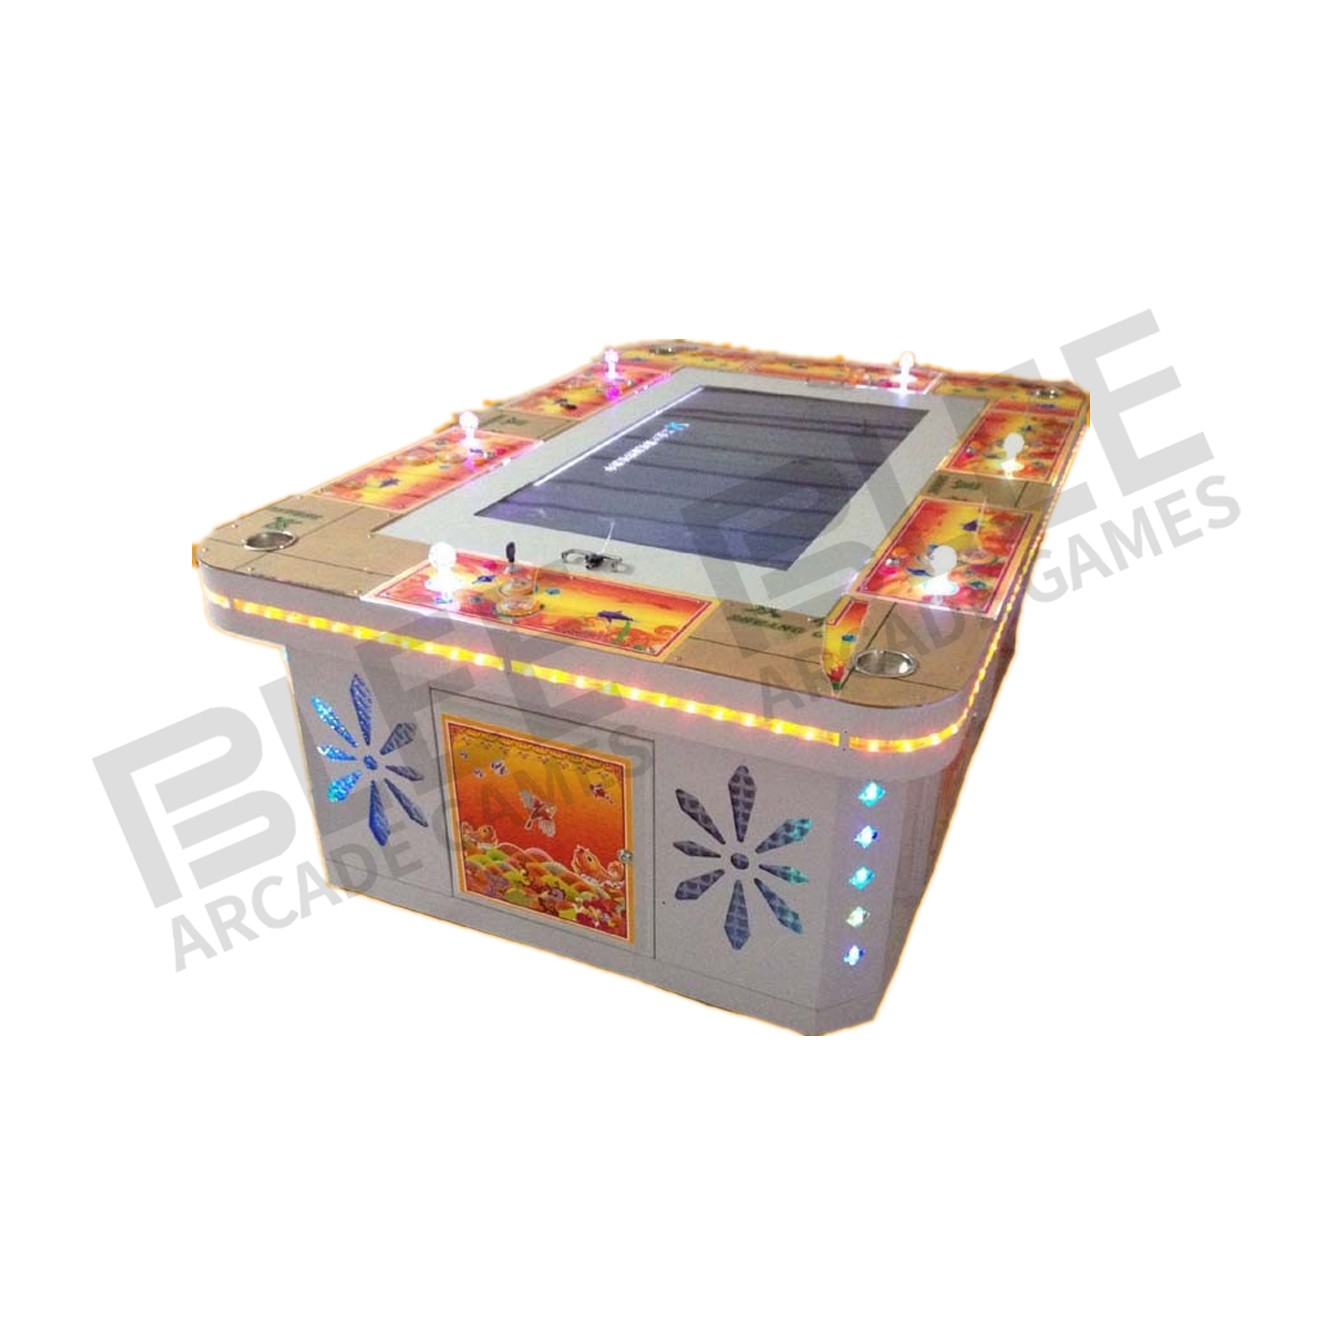 BLEE-Find Shooting Arcade Machines For Sale Desktop Arcade Machine